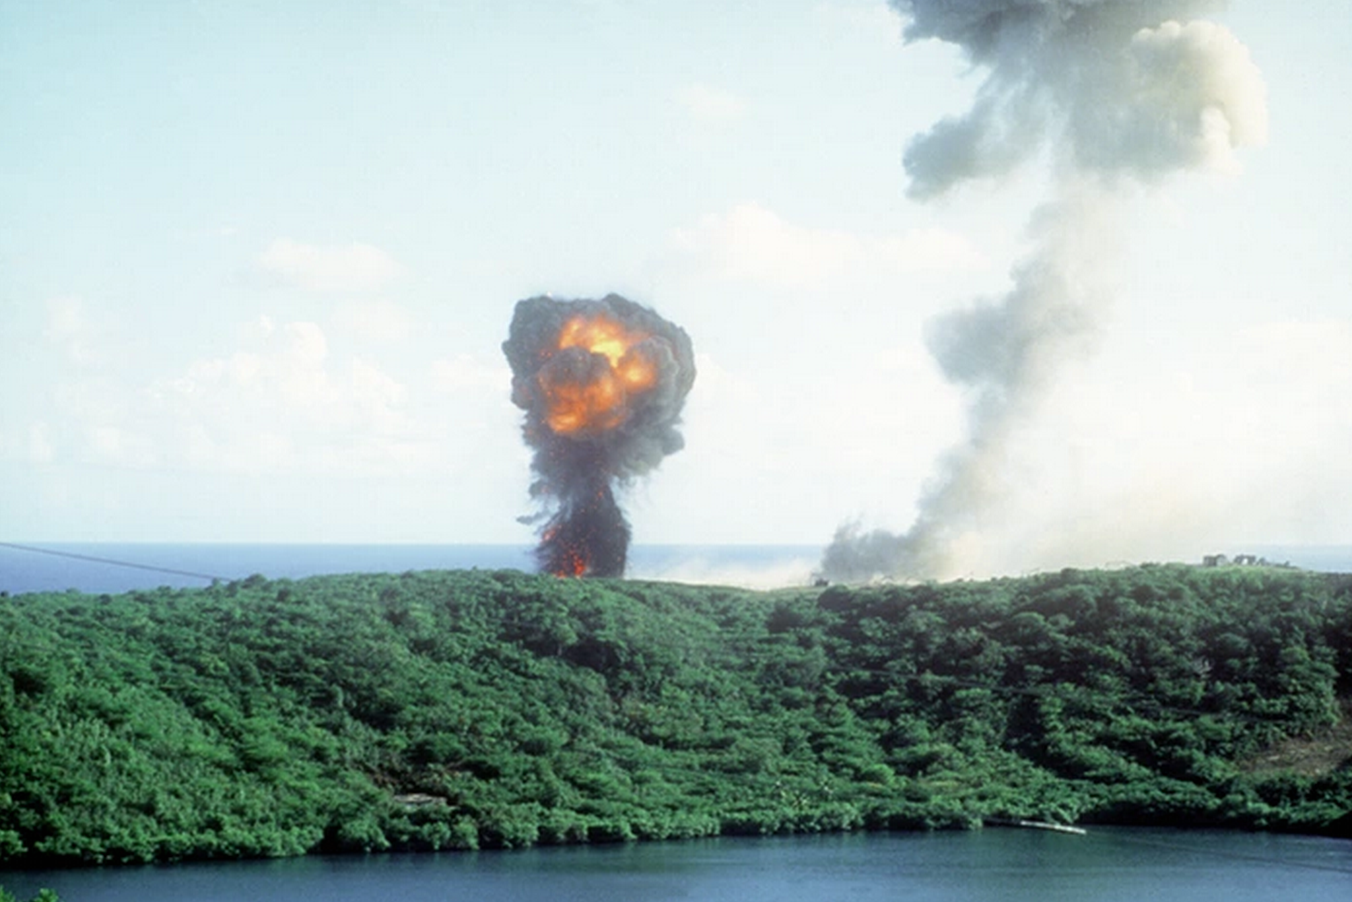 did u know the US invaded Grenada, a small Caribbean island country, in 1983?! Learn more: https://t.co/tRBren2BhL http://t.co/9gaJ836CkD